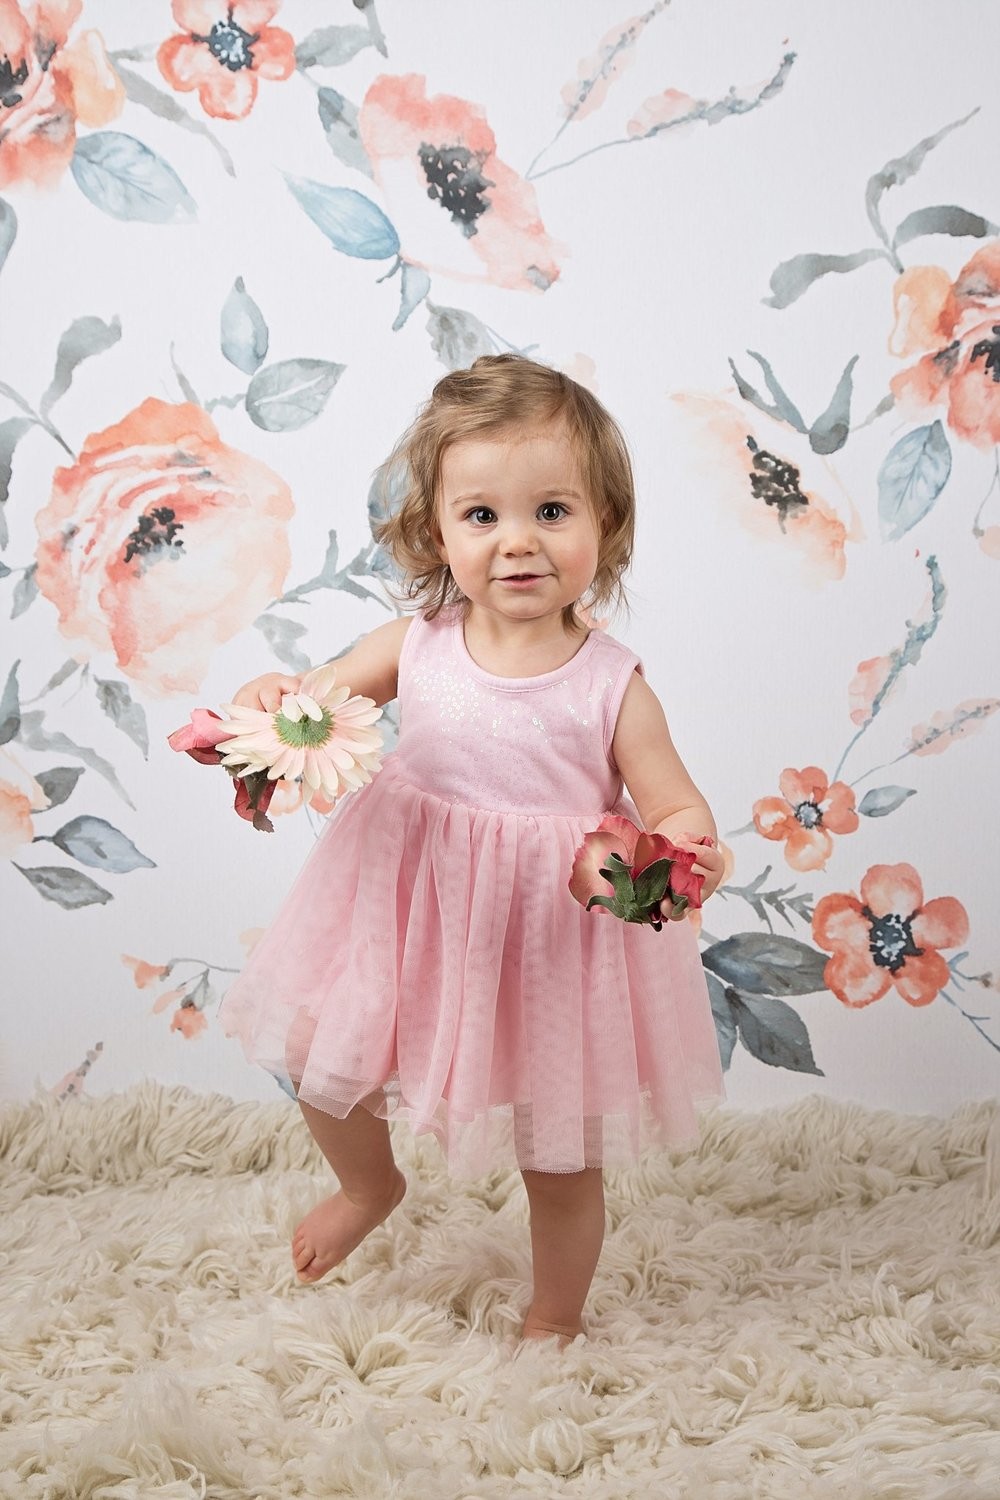 Adorable little girl in pink dress at spring photo shoot holding flowers with a floral background in Calgary photography studio for affordable  kids photos